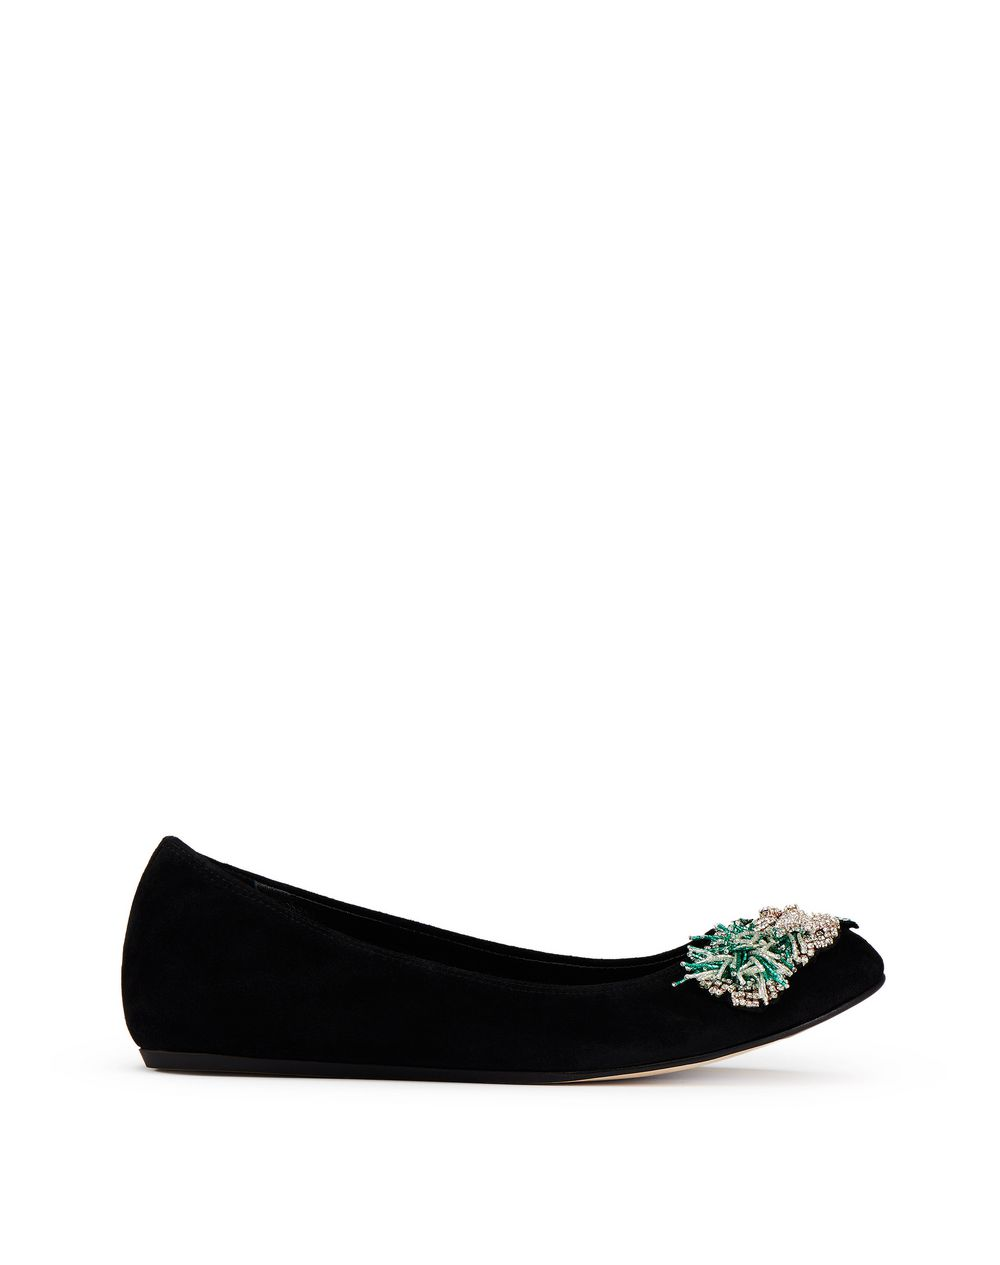 CLASSIC BLACK EMBROIDERED BALLET FLAT  - Lanvin